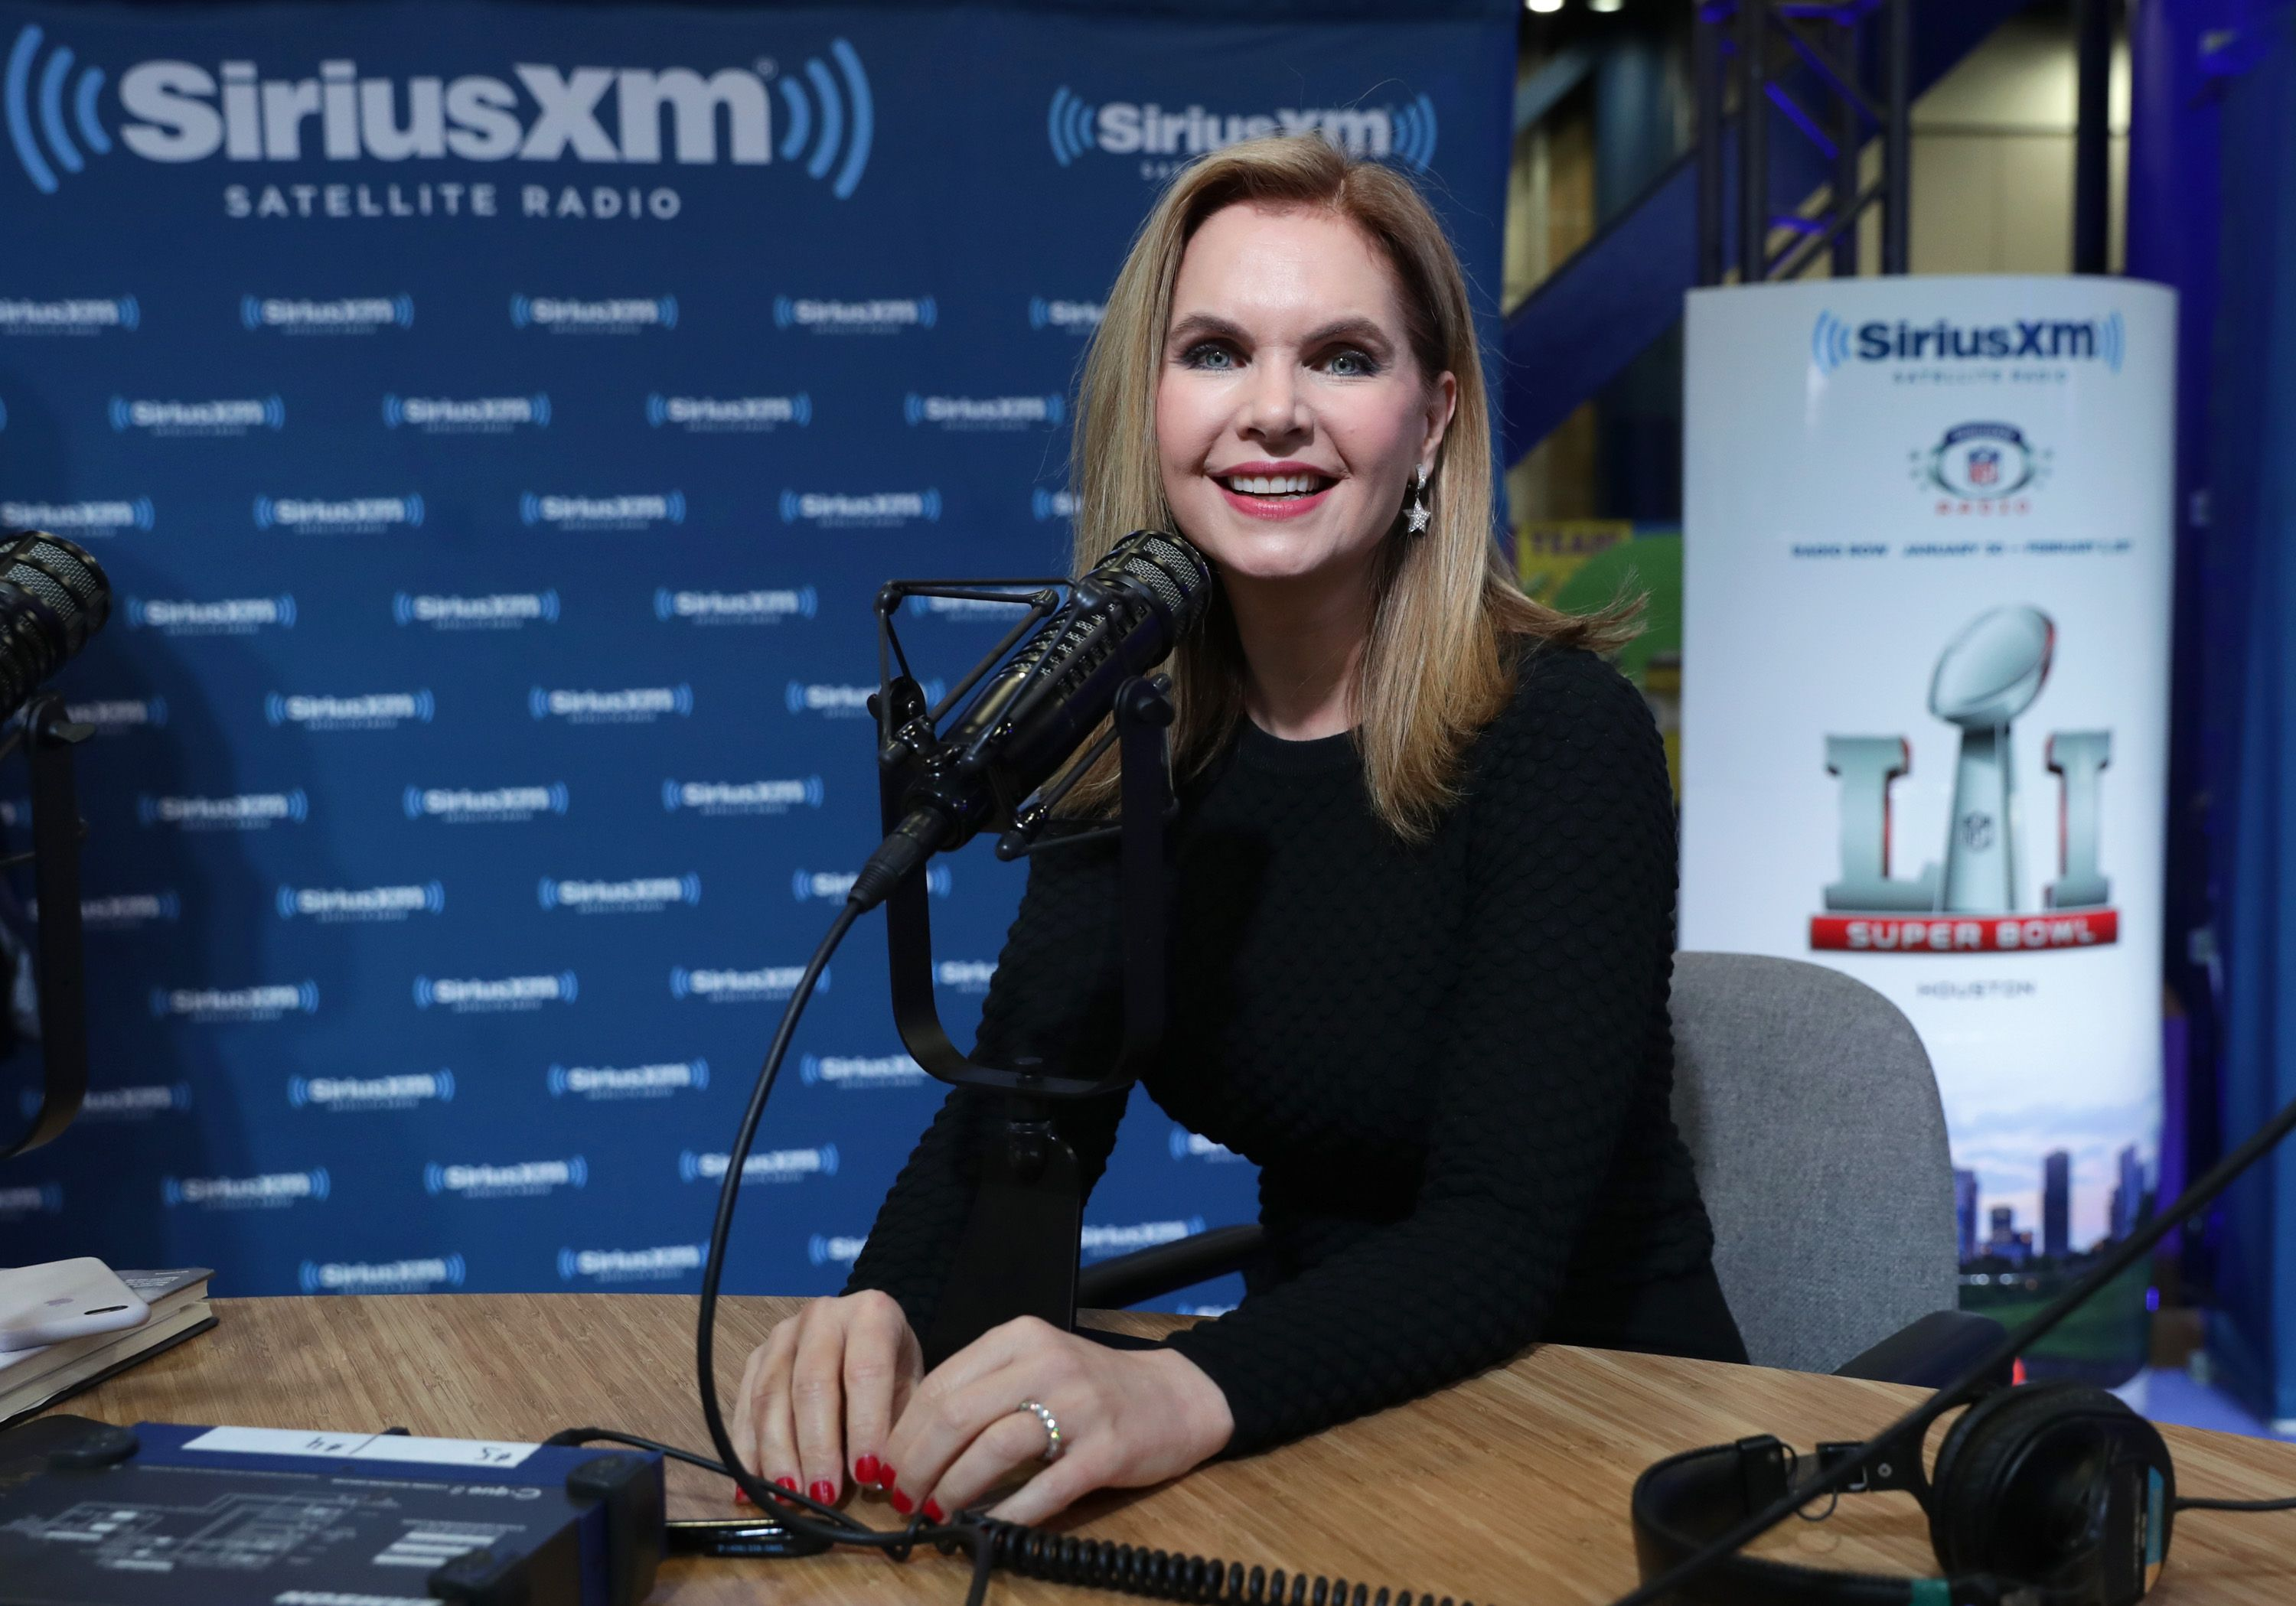 Victoria Osteen at the SiriusXM set in 2017 in Houston, Texas | Source: Getty Images